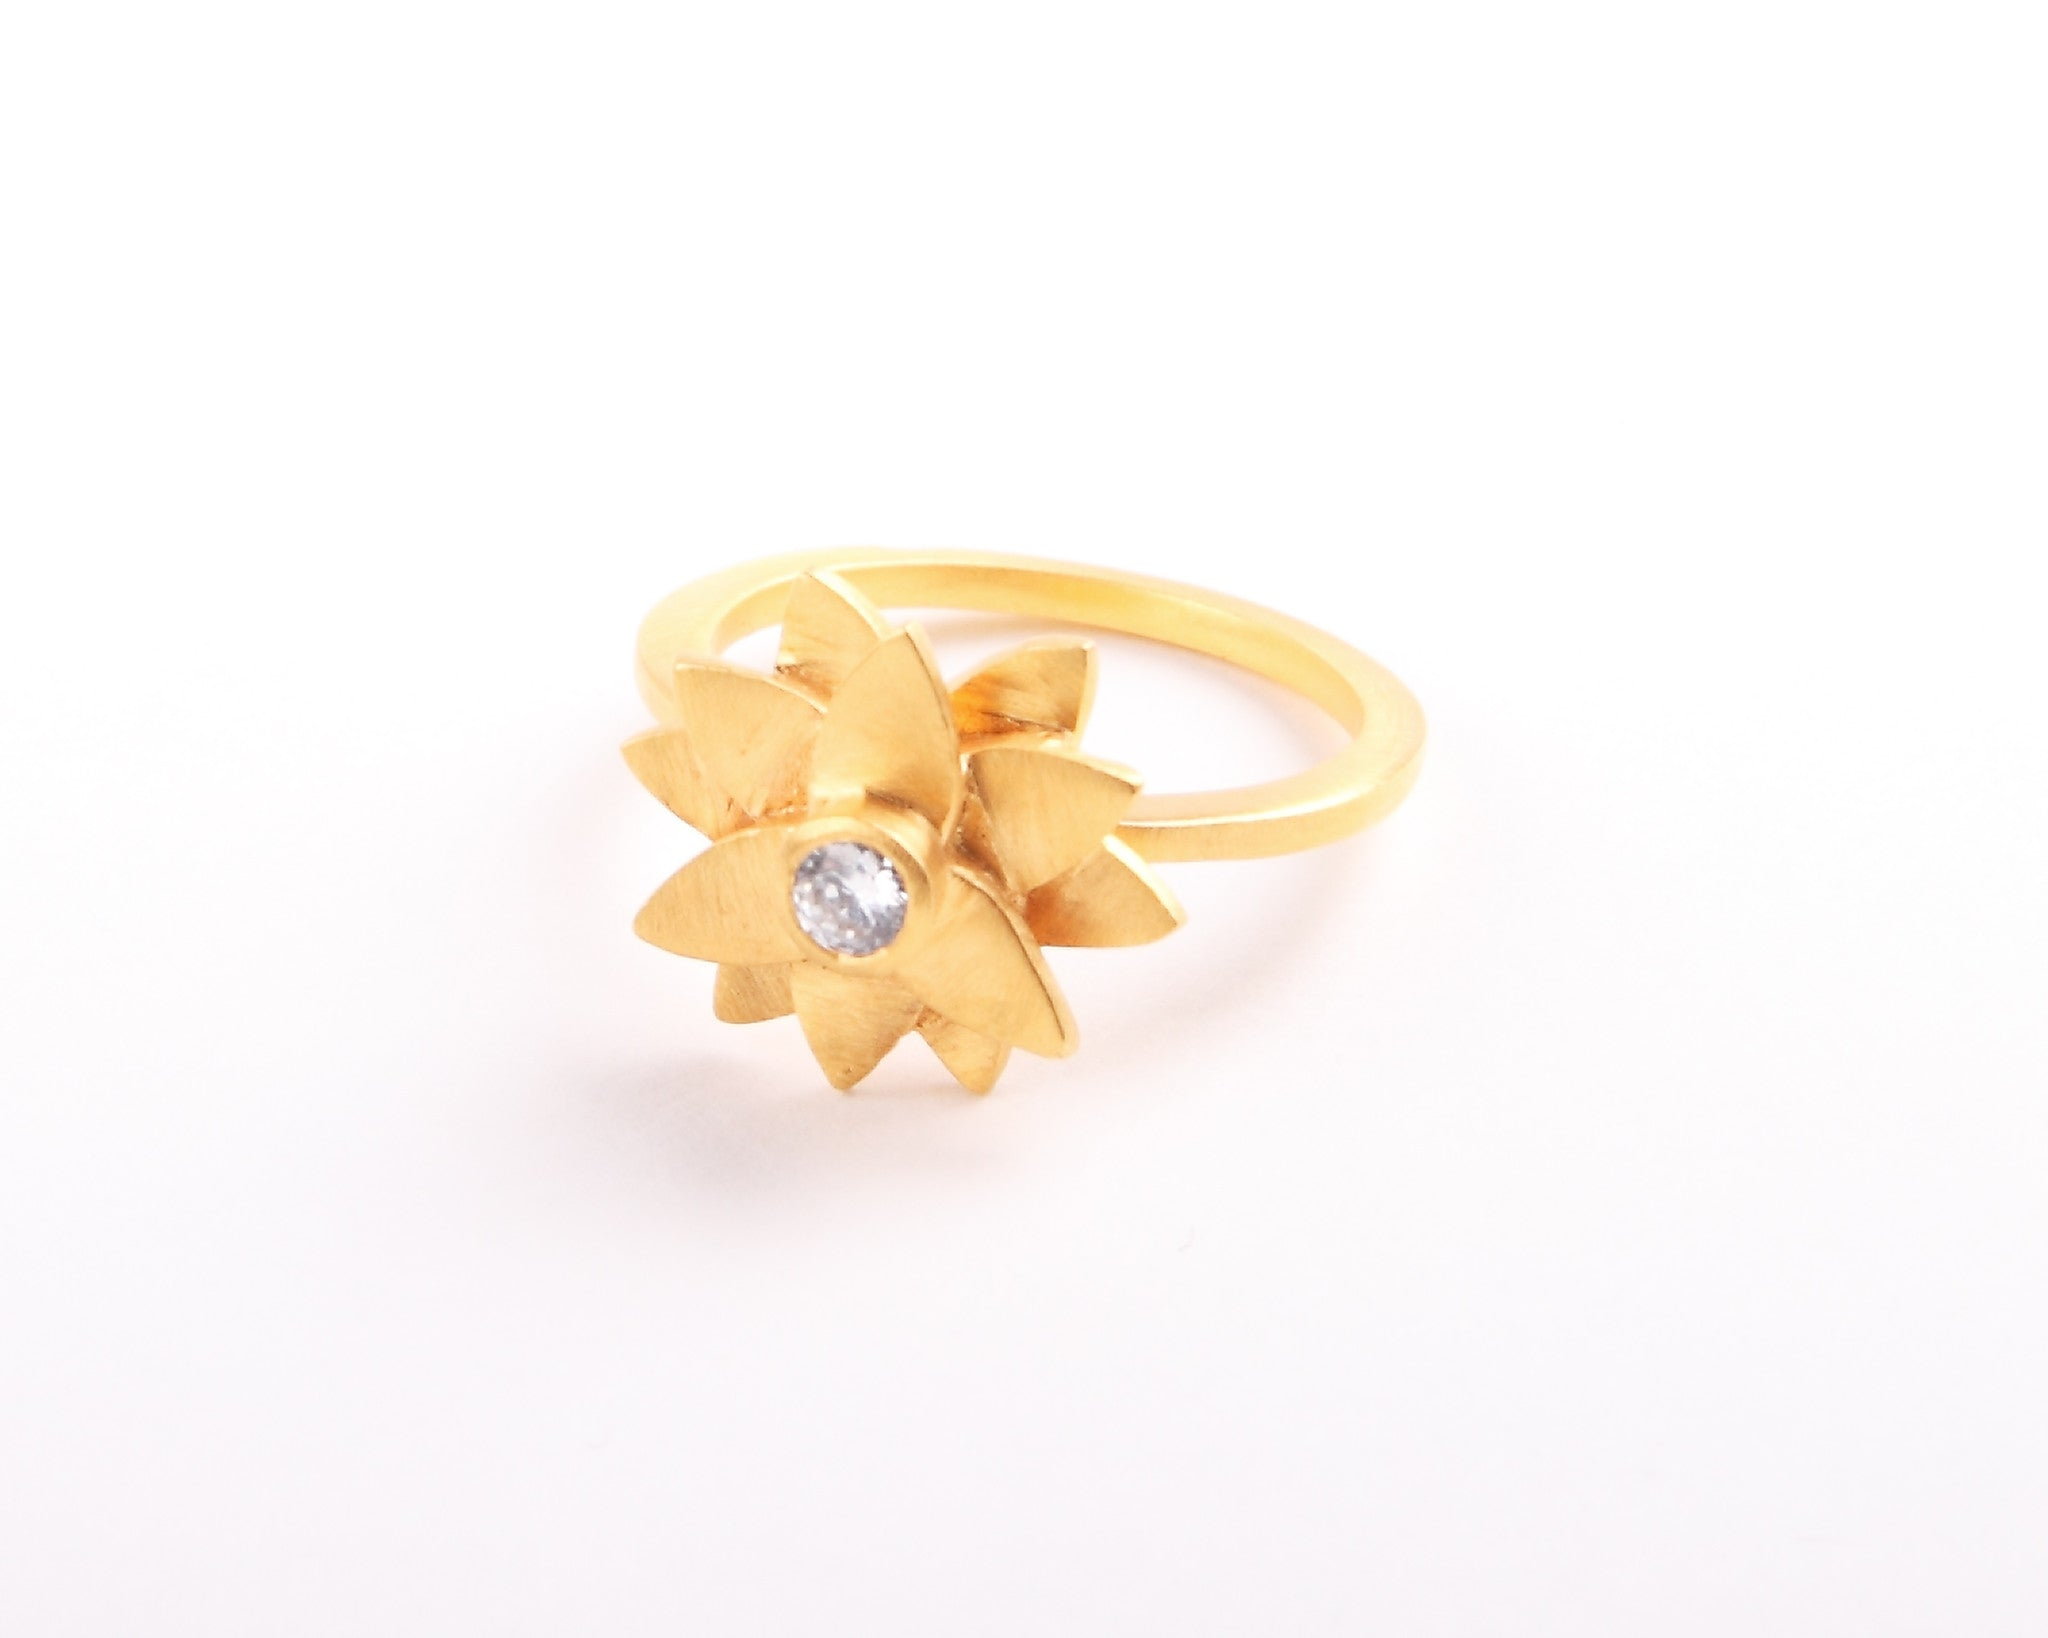 Lotus Flower 22KT Gold Plated Ring with center crystal